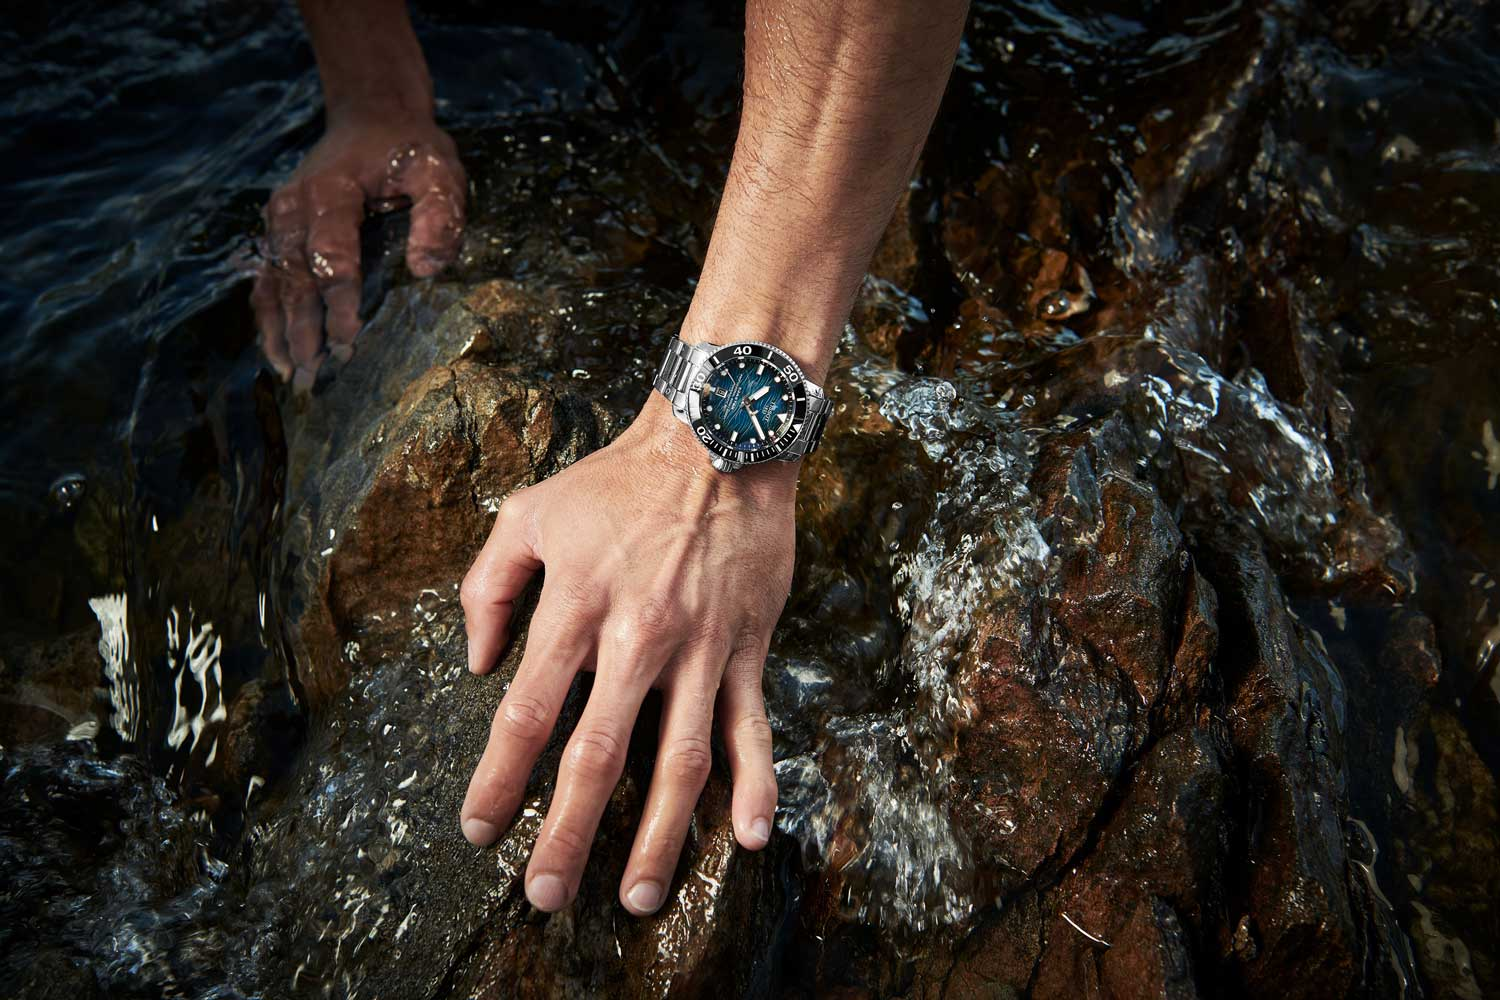 The Seastar 2000 Pro is a serious dive watch with an ISO 6425 certification.